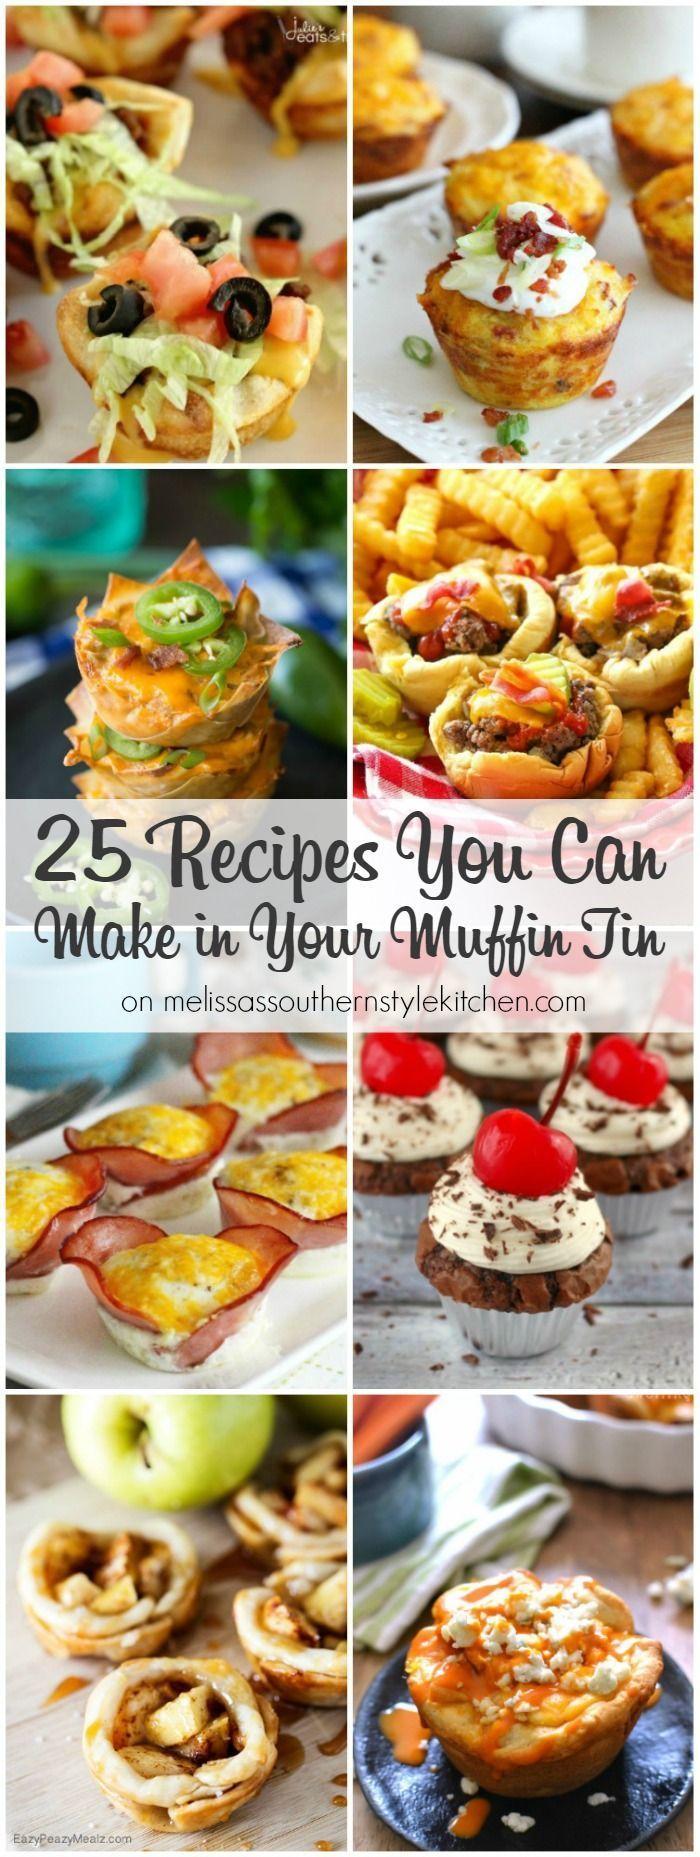 25 Recipes You Can Make in Your Muffin Tin HERO